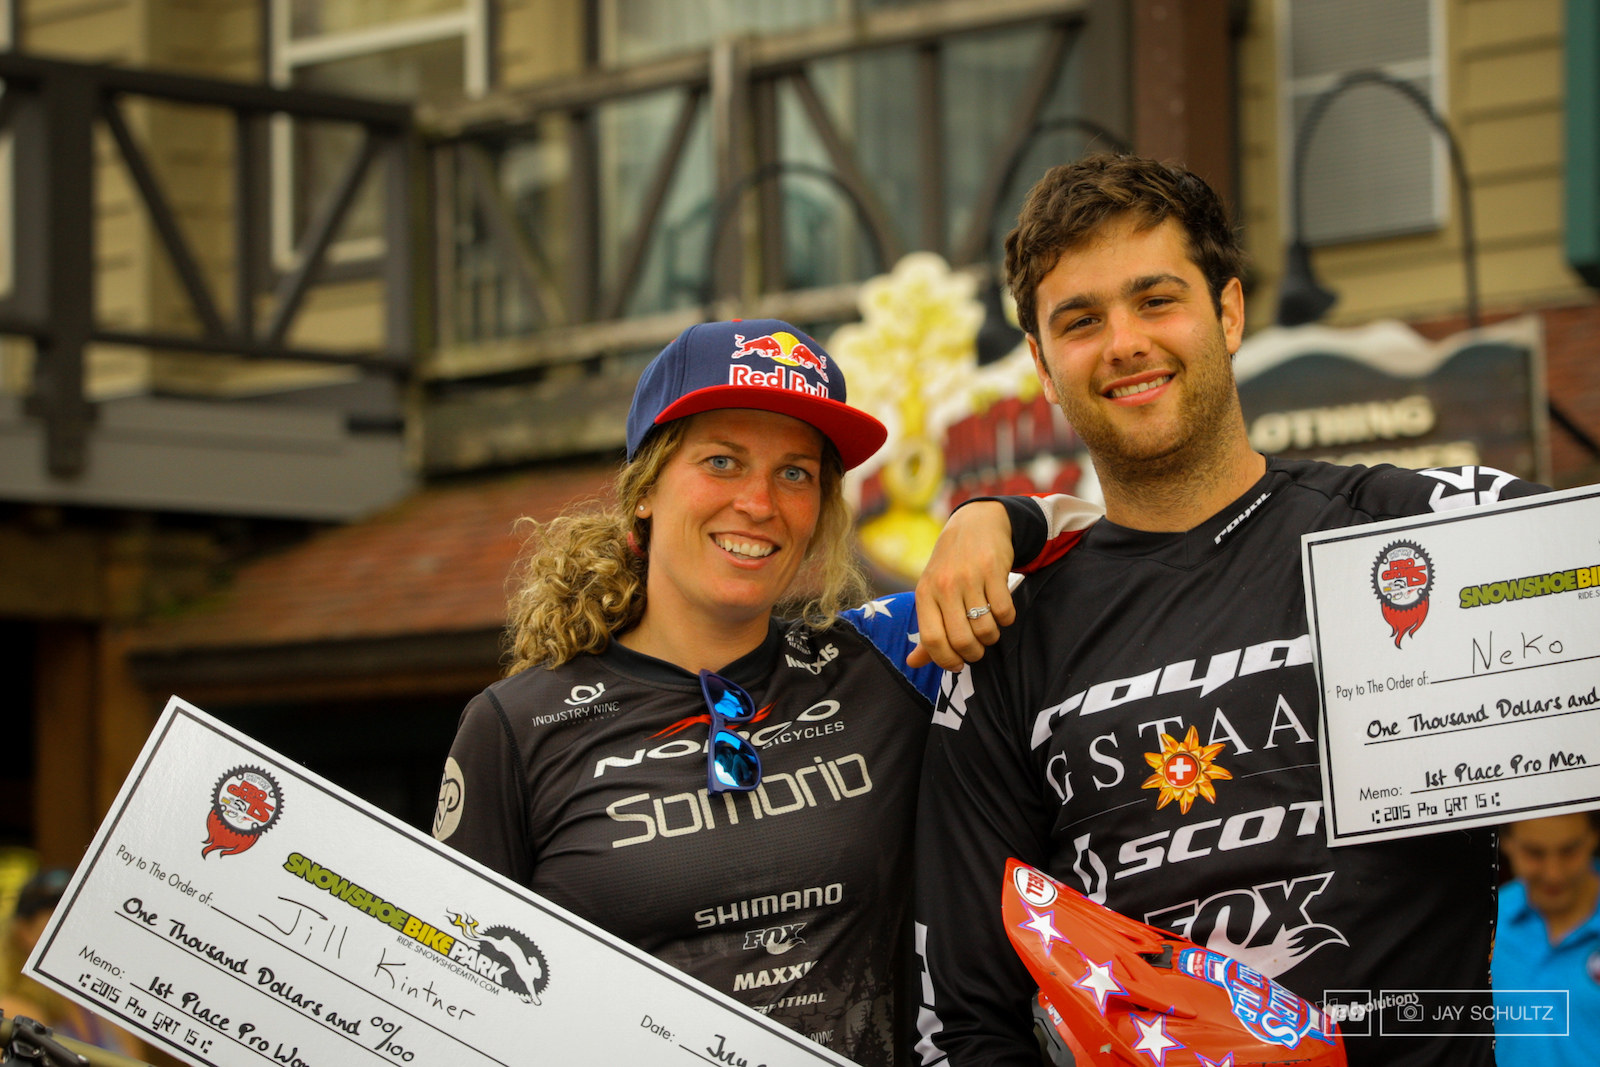 Pro Winners - Jill Kintner and Neko Mulally. Time to enjoy a hard weekend of work well really all play and no work.